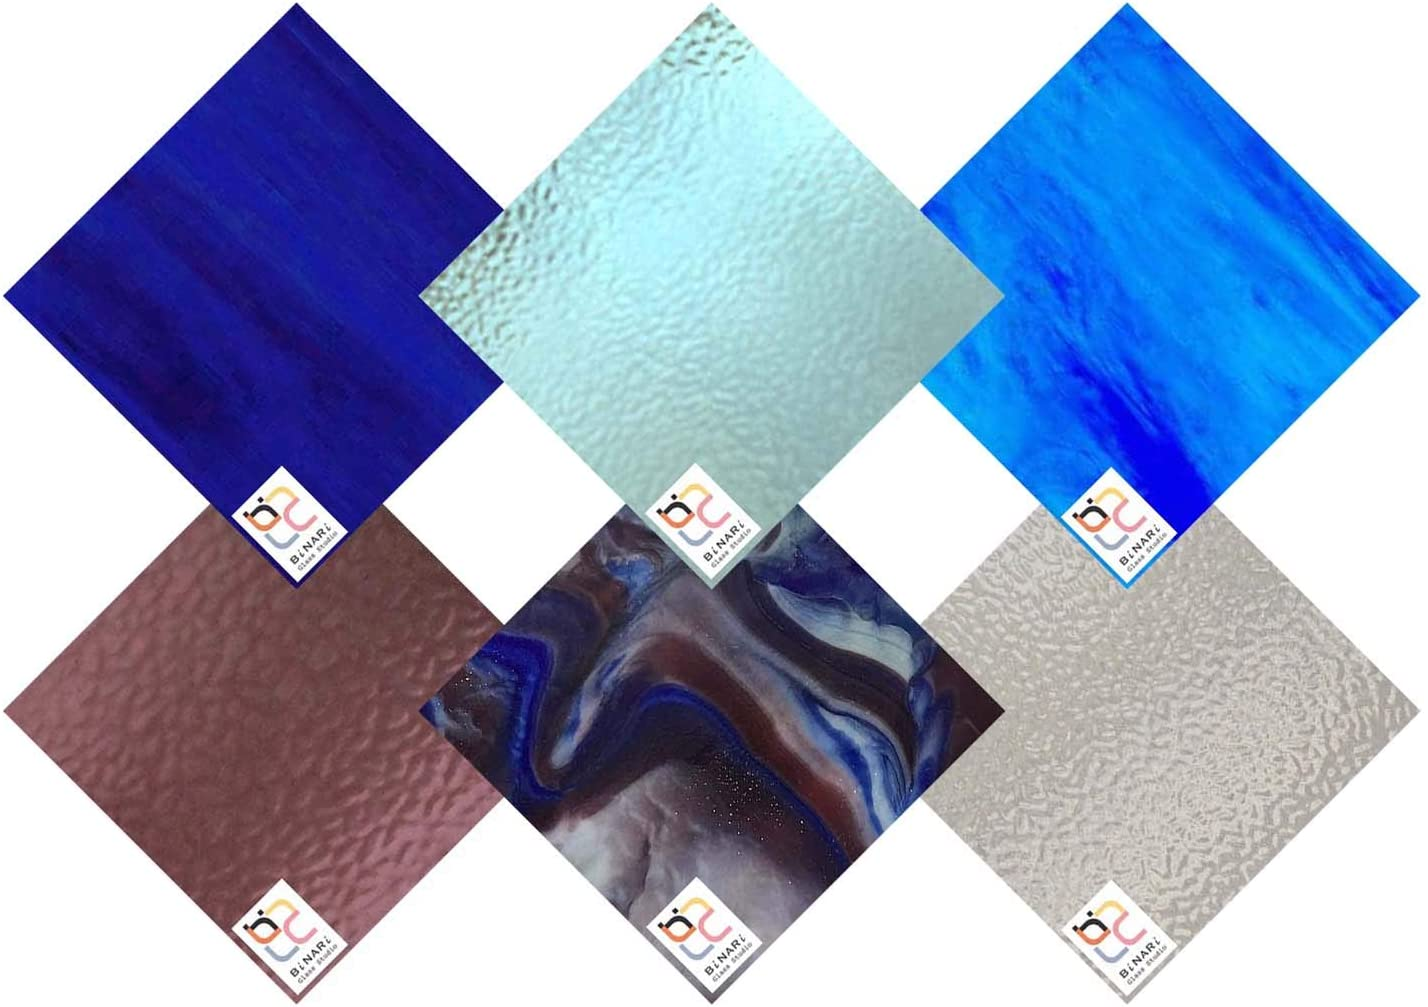 Wissmach 6 Sheet Mixed Color Variety Glass Save money Max 79% OFF ICY Sto Stained Pack